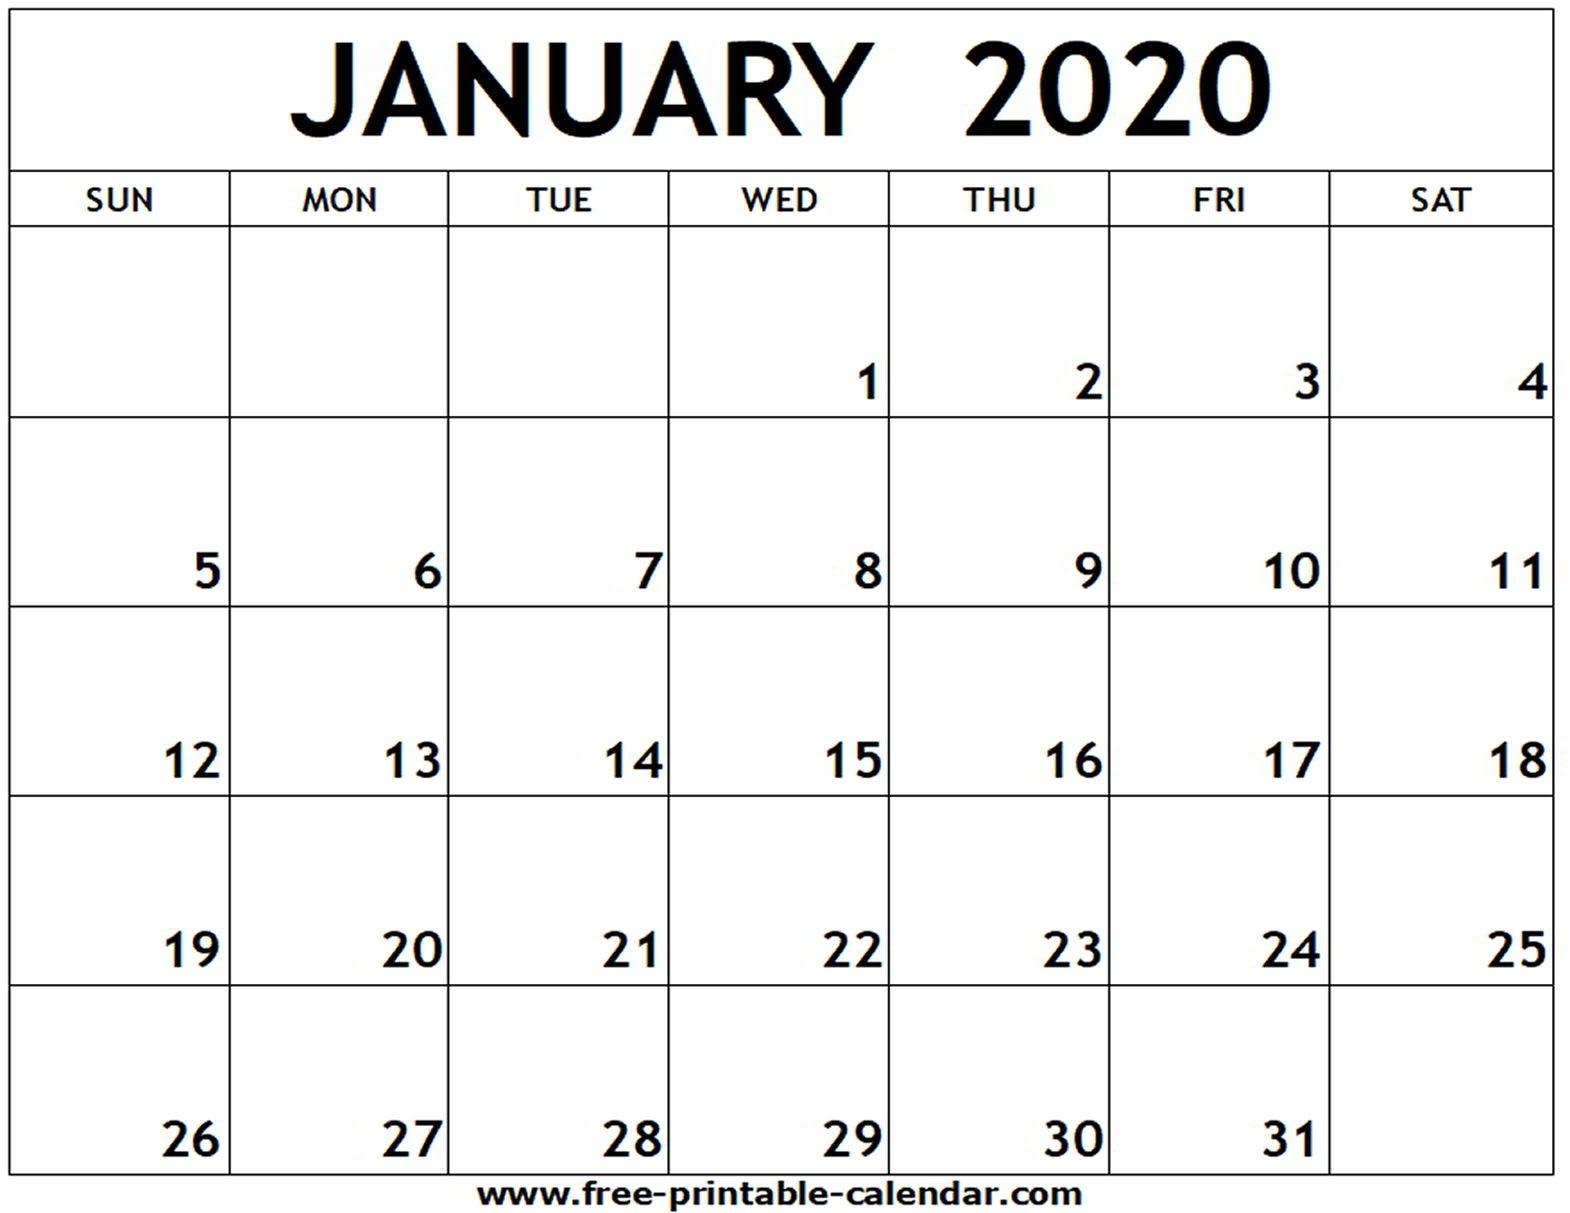 January 2020 Printable Calendar - Free-Printable-Calendar-Printable Calendar Of January 2020